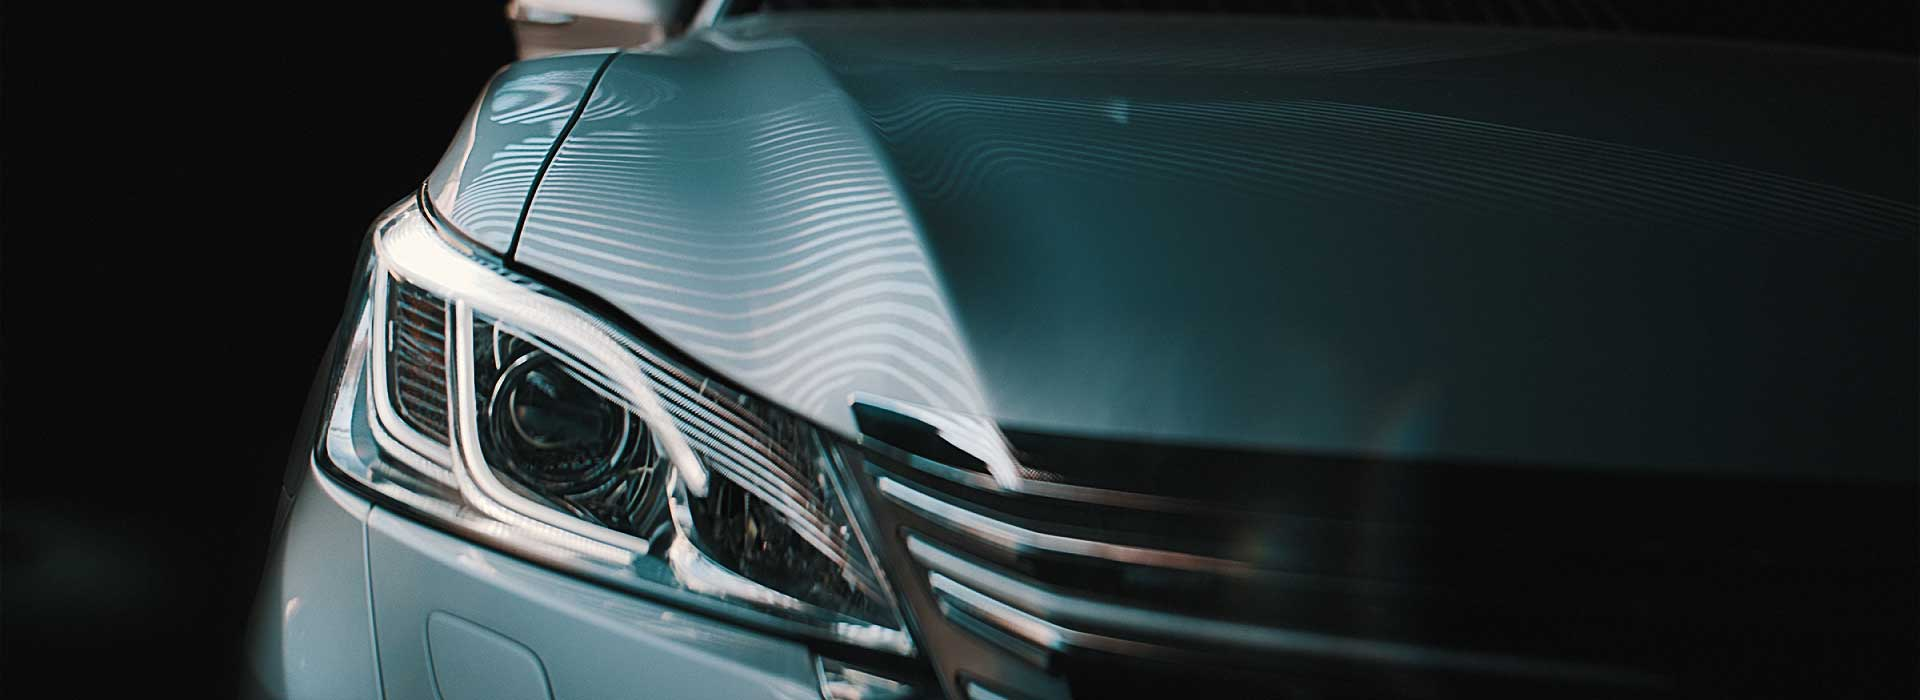 Carlights detail. Still from Toyota Crown commercial